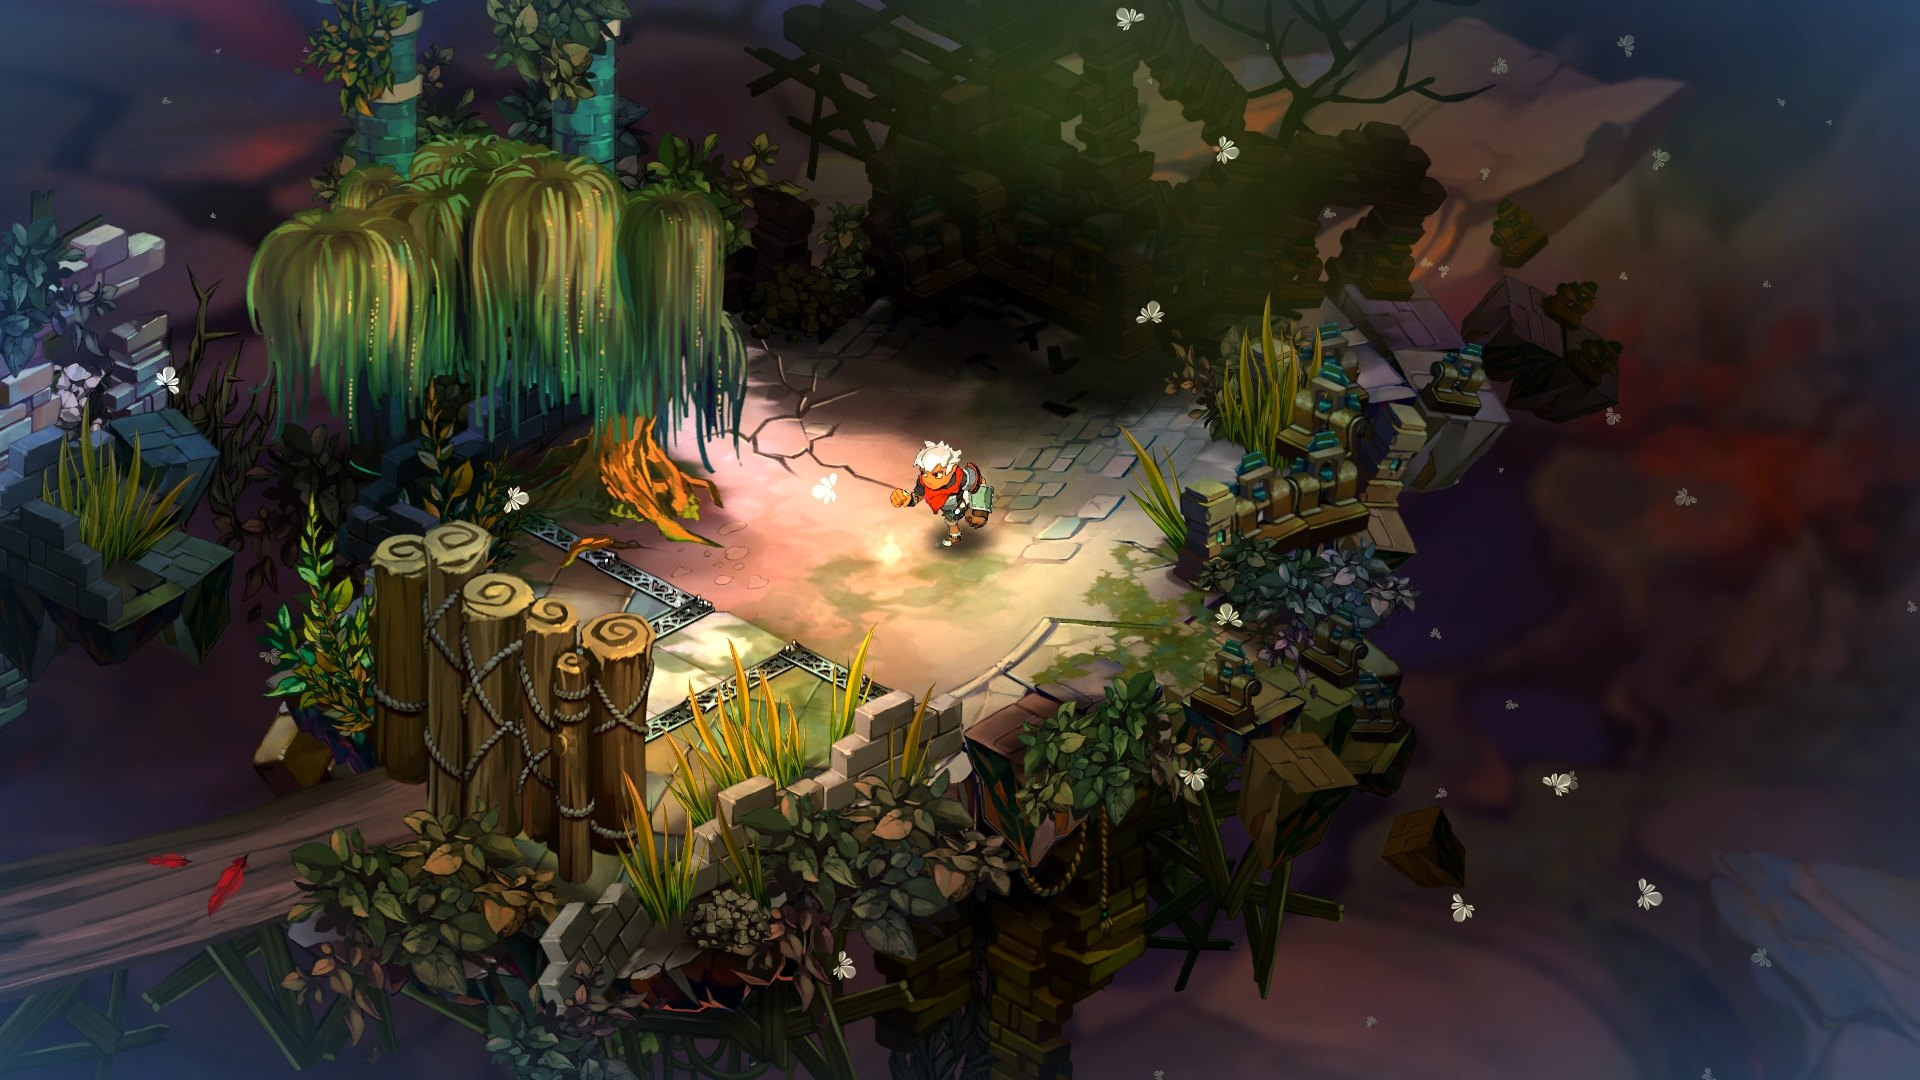 Bastion Launches Today on PS4 in North America, Soon in